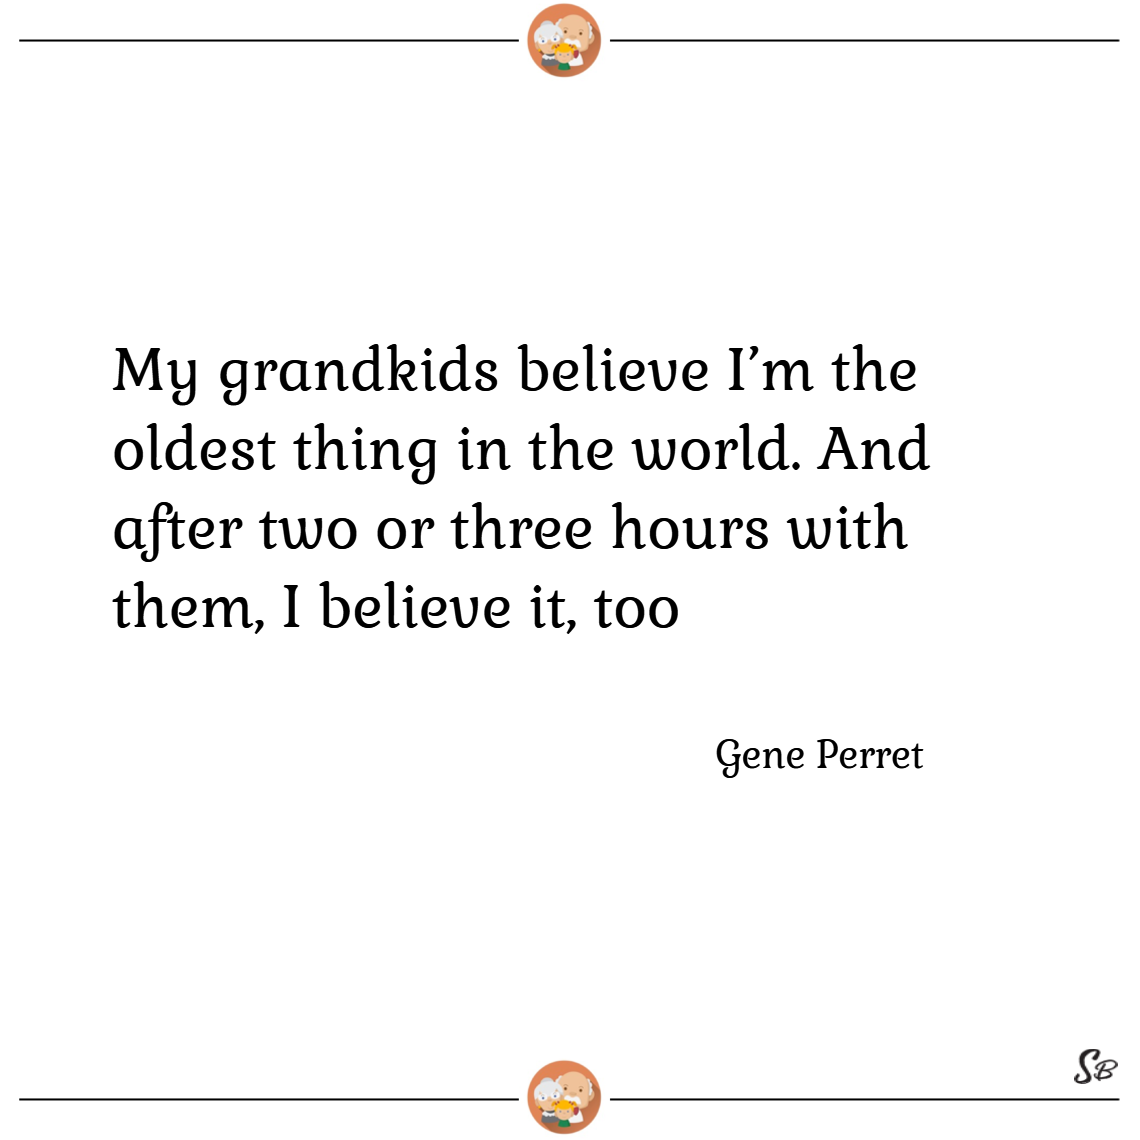 My grandkids believe i'm the oldest thing in the world. and after two or three hours with them, i believe it, too. – gene perret